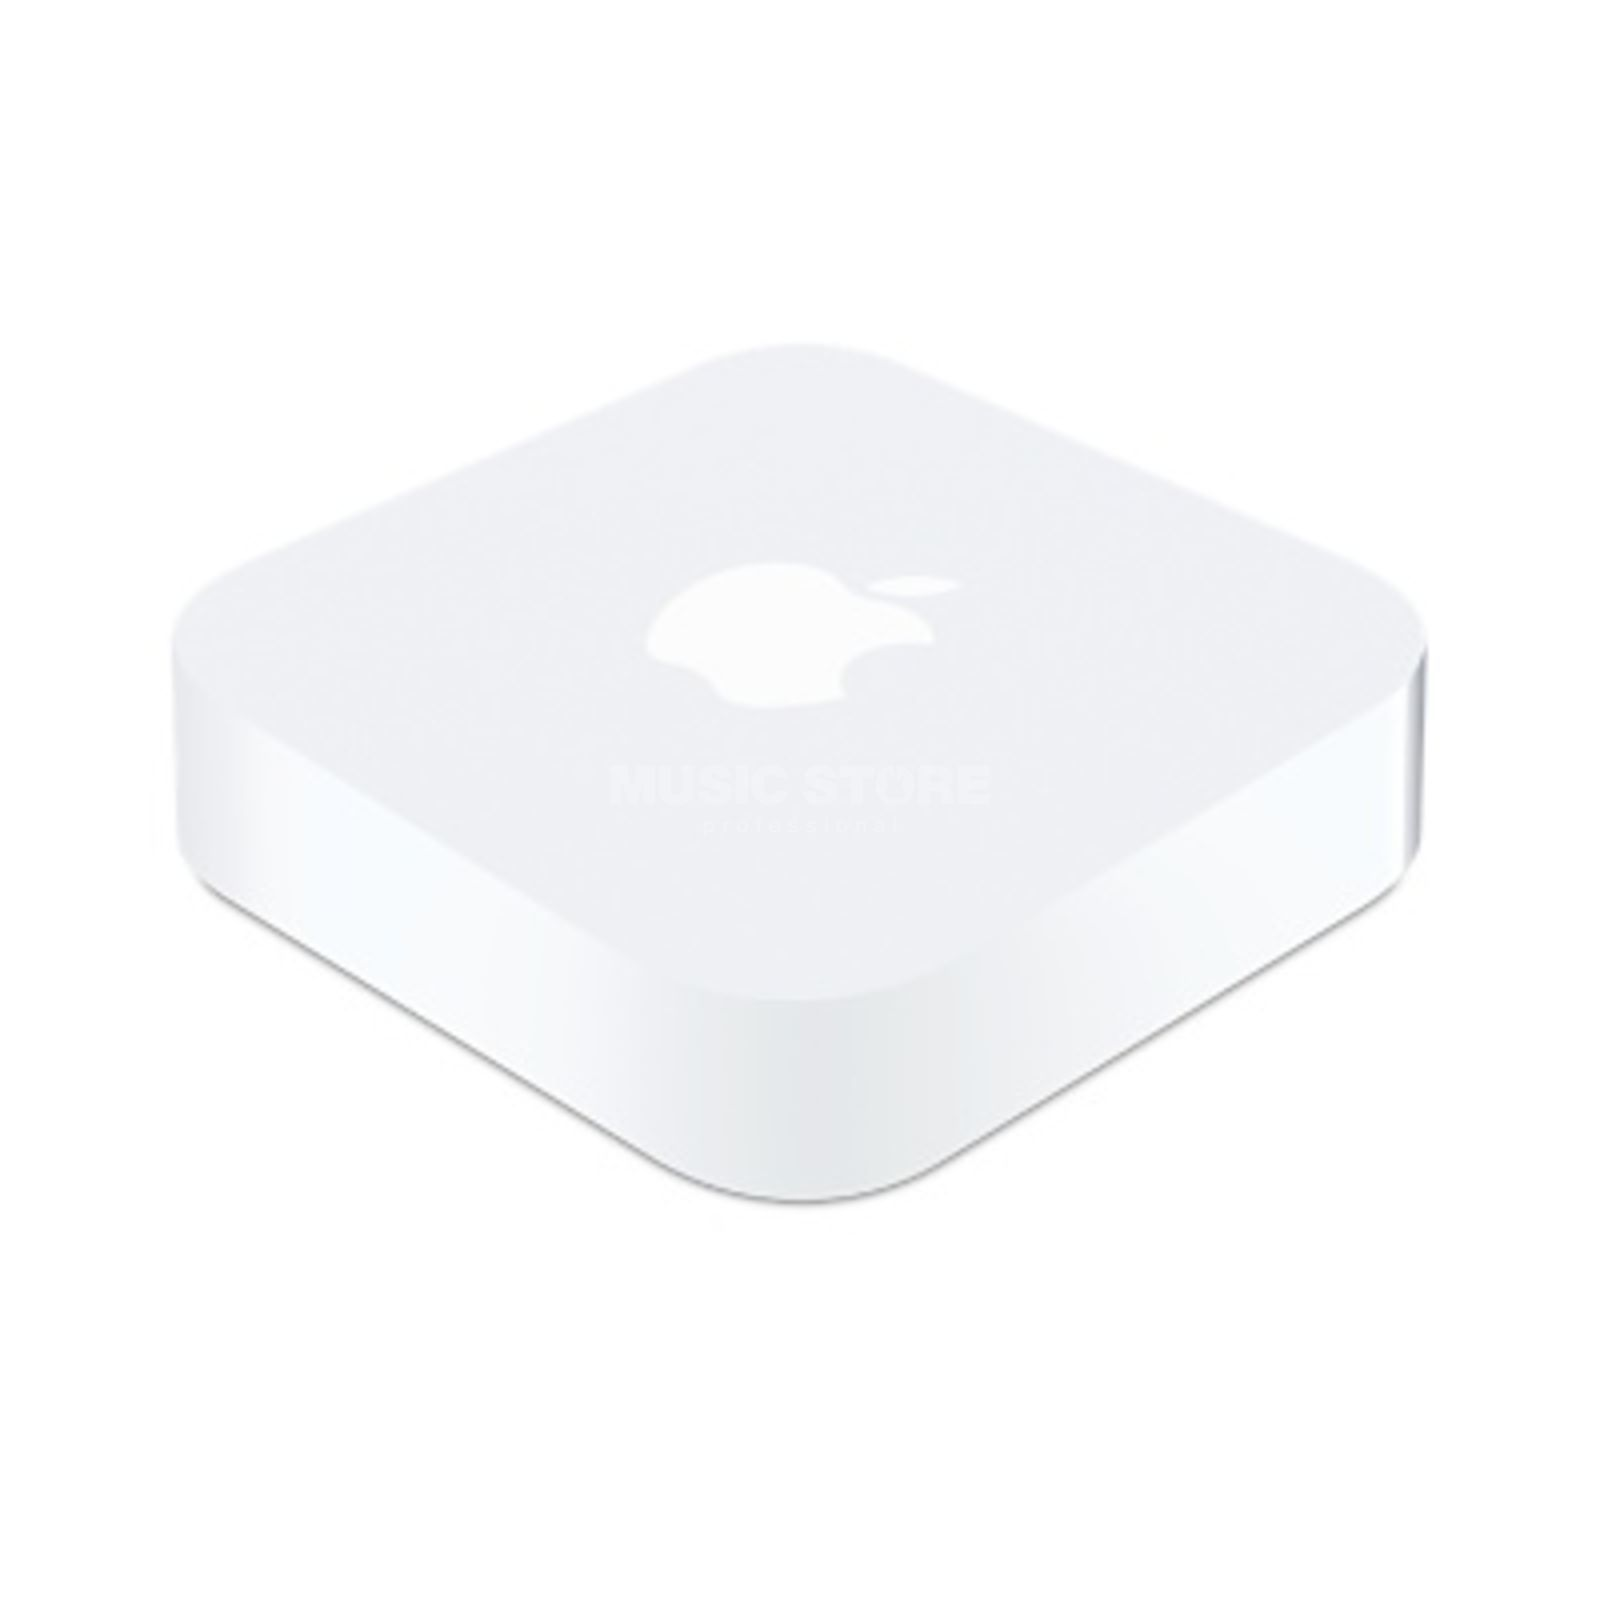 Apple Airport Express Basisstation  Produktbillede